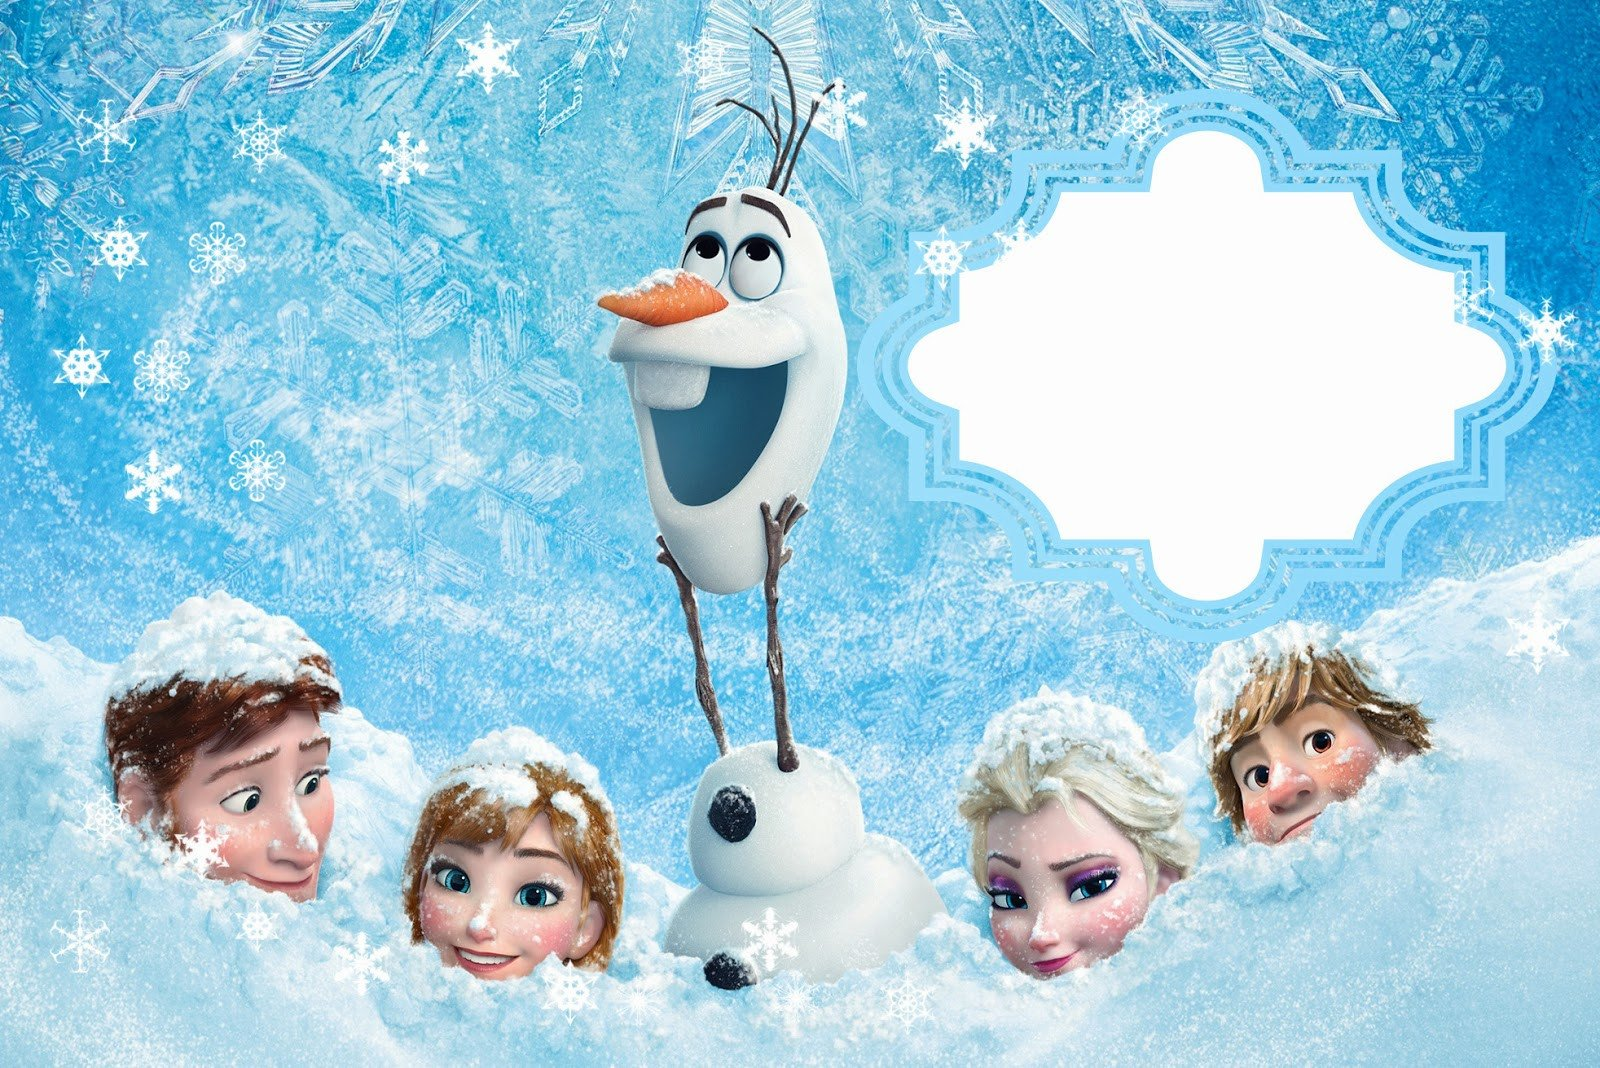 Free Printable Frozen Invites Frozen Free Printable Cards or Party Invitations